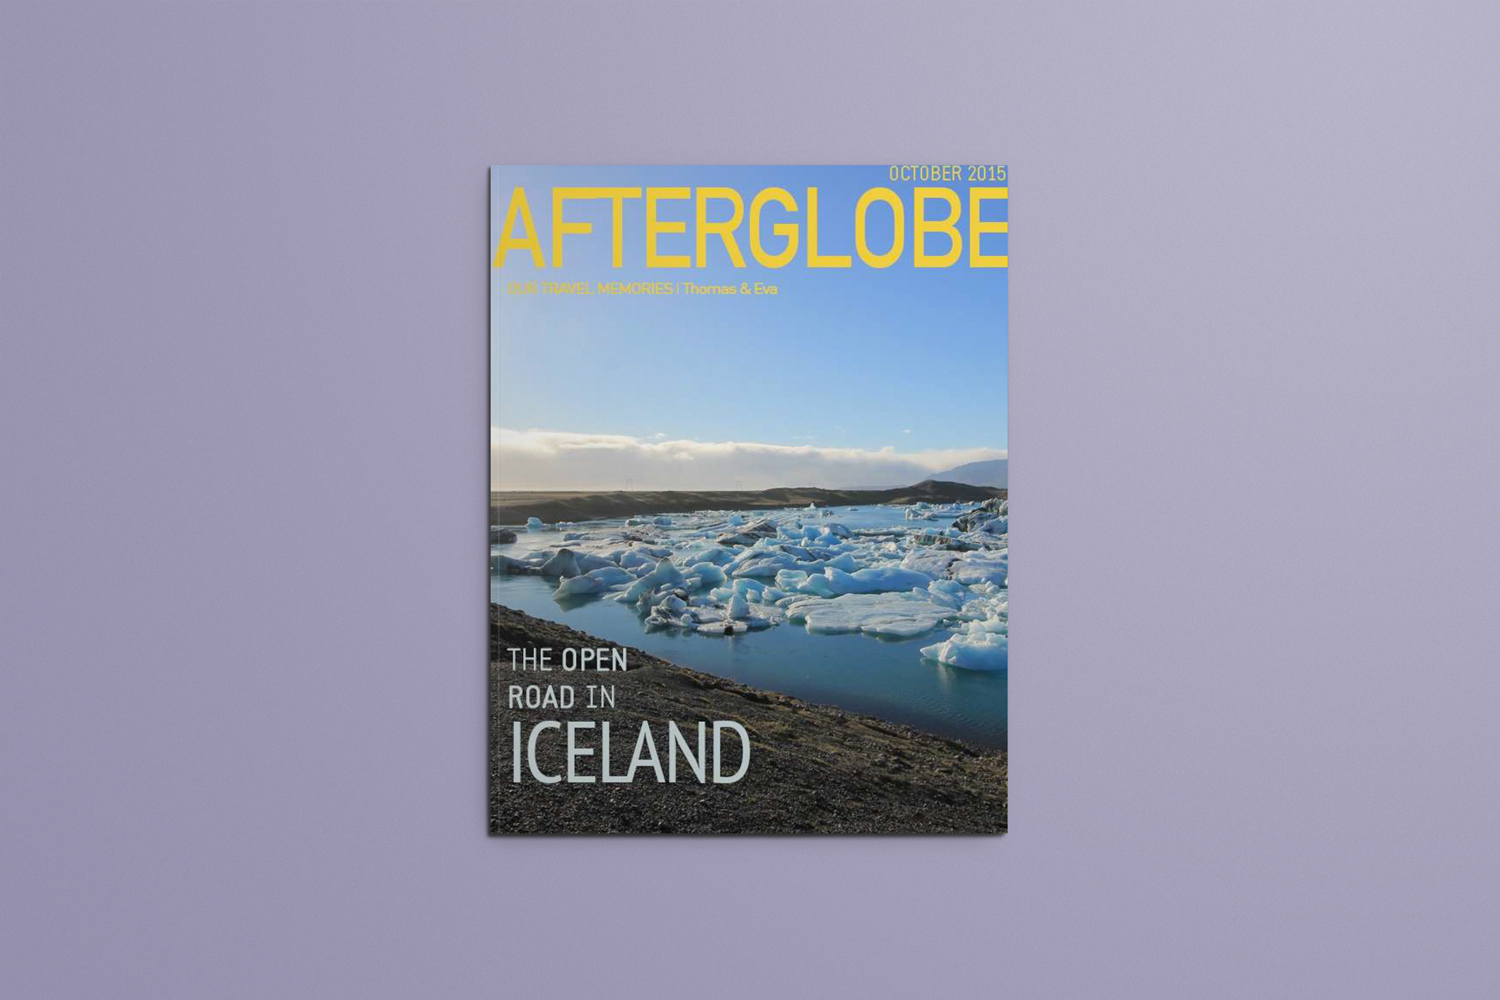 afterglobe-cover.png